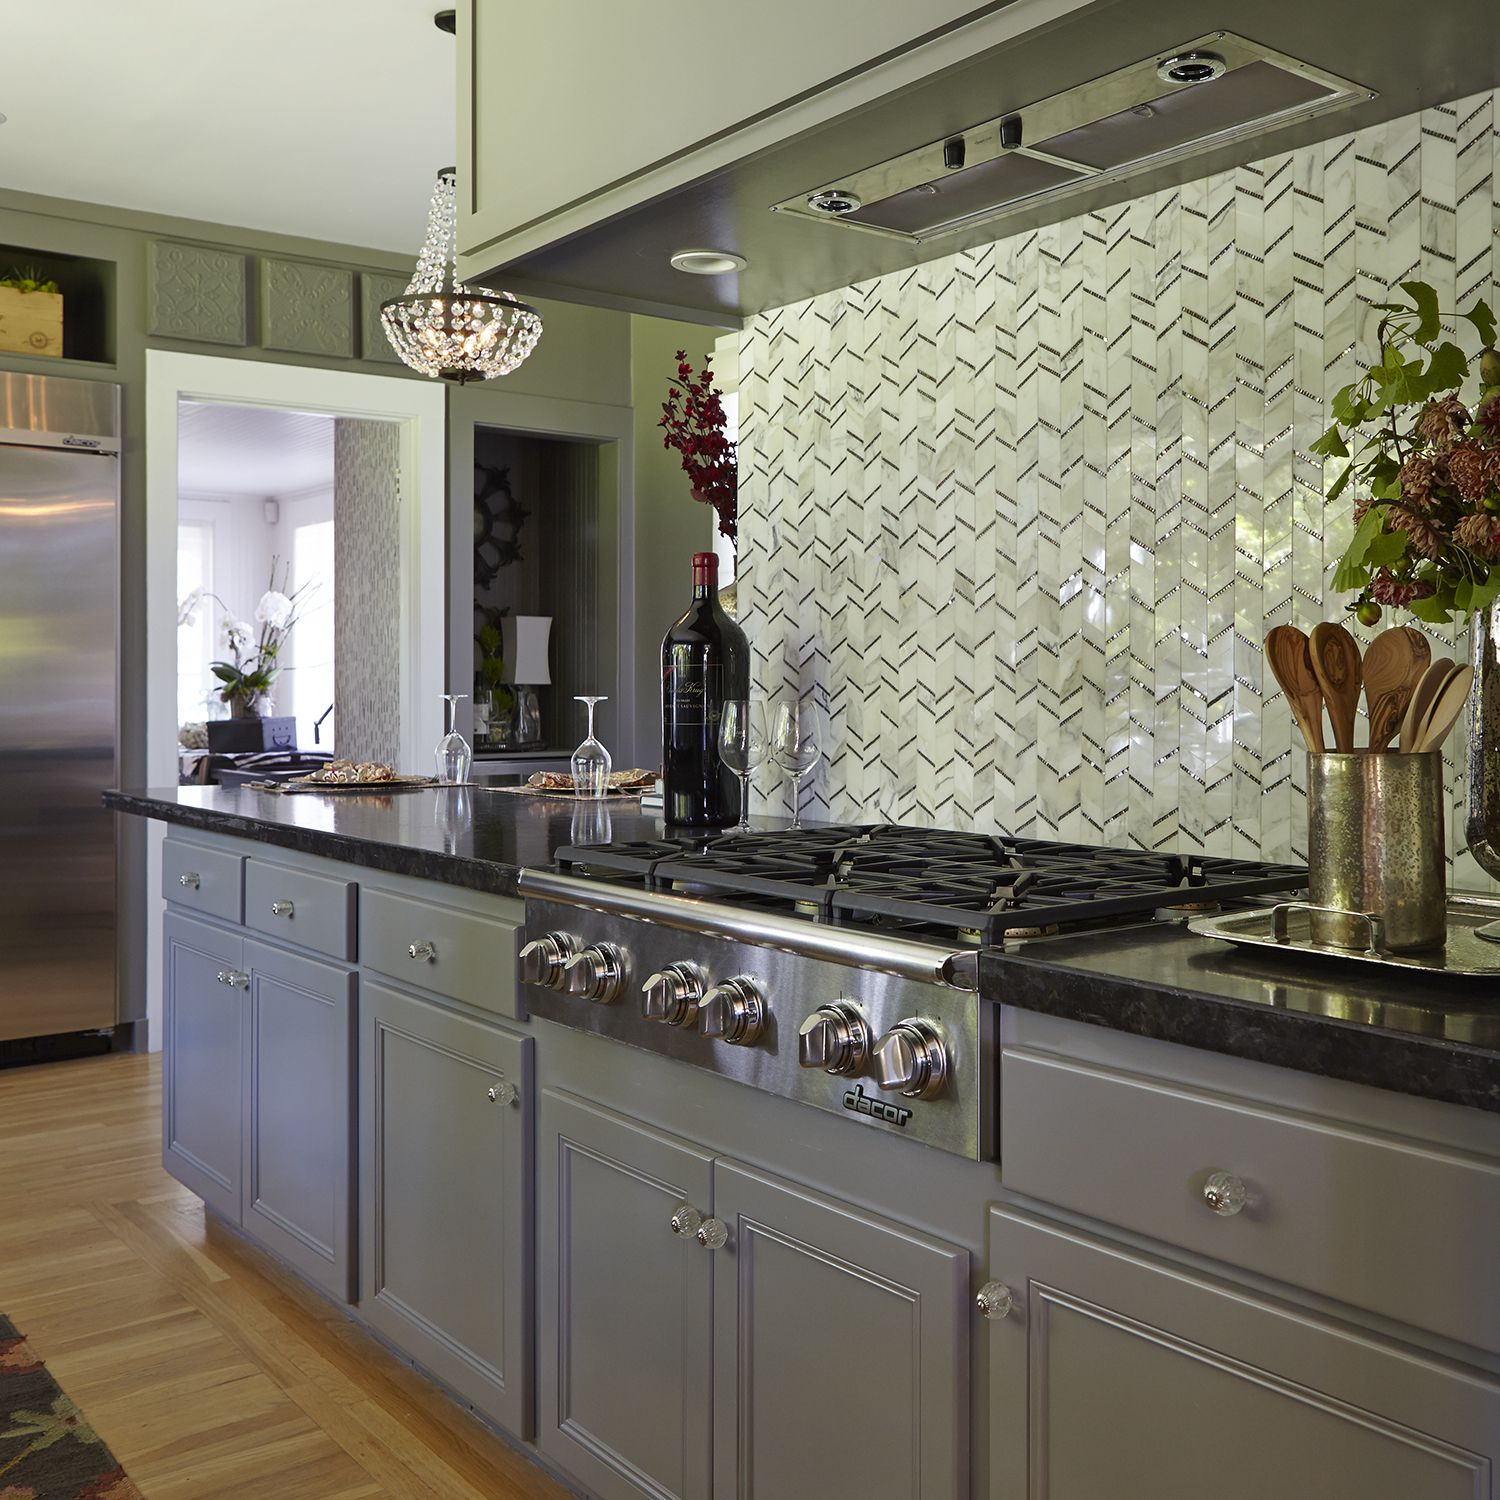 Kitchen Colors With White Cabinets And Stainless Appliances: Lovely Tiles From AKDO Form The Geometric Backsplash. The